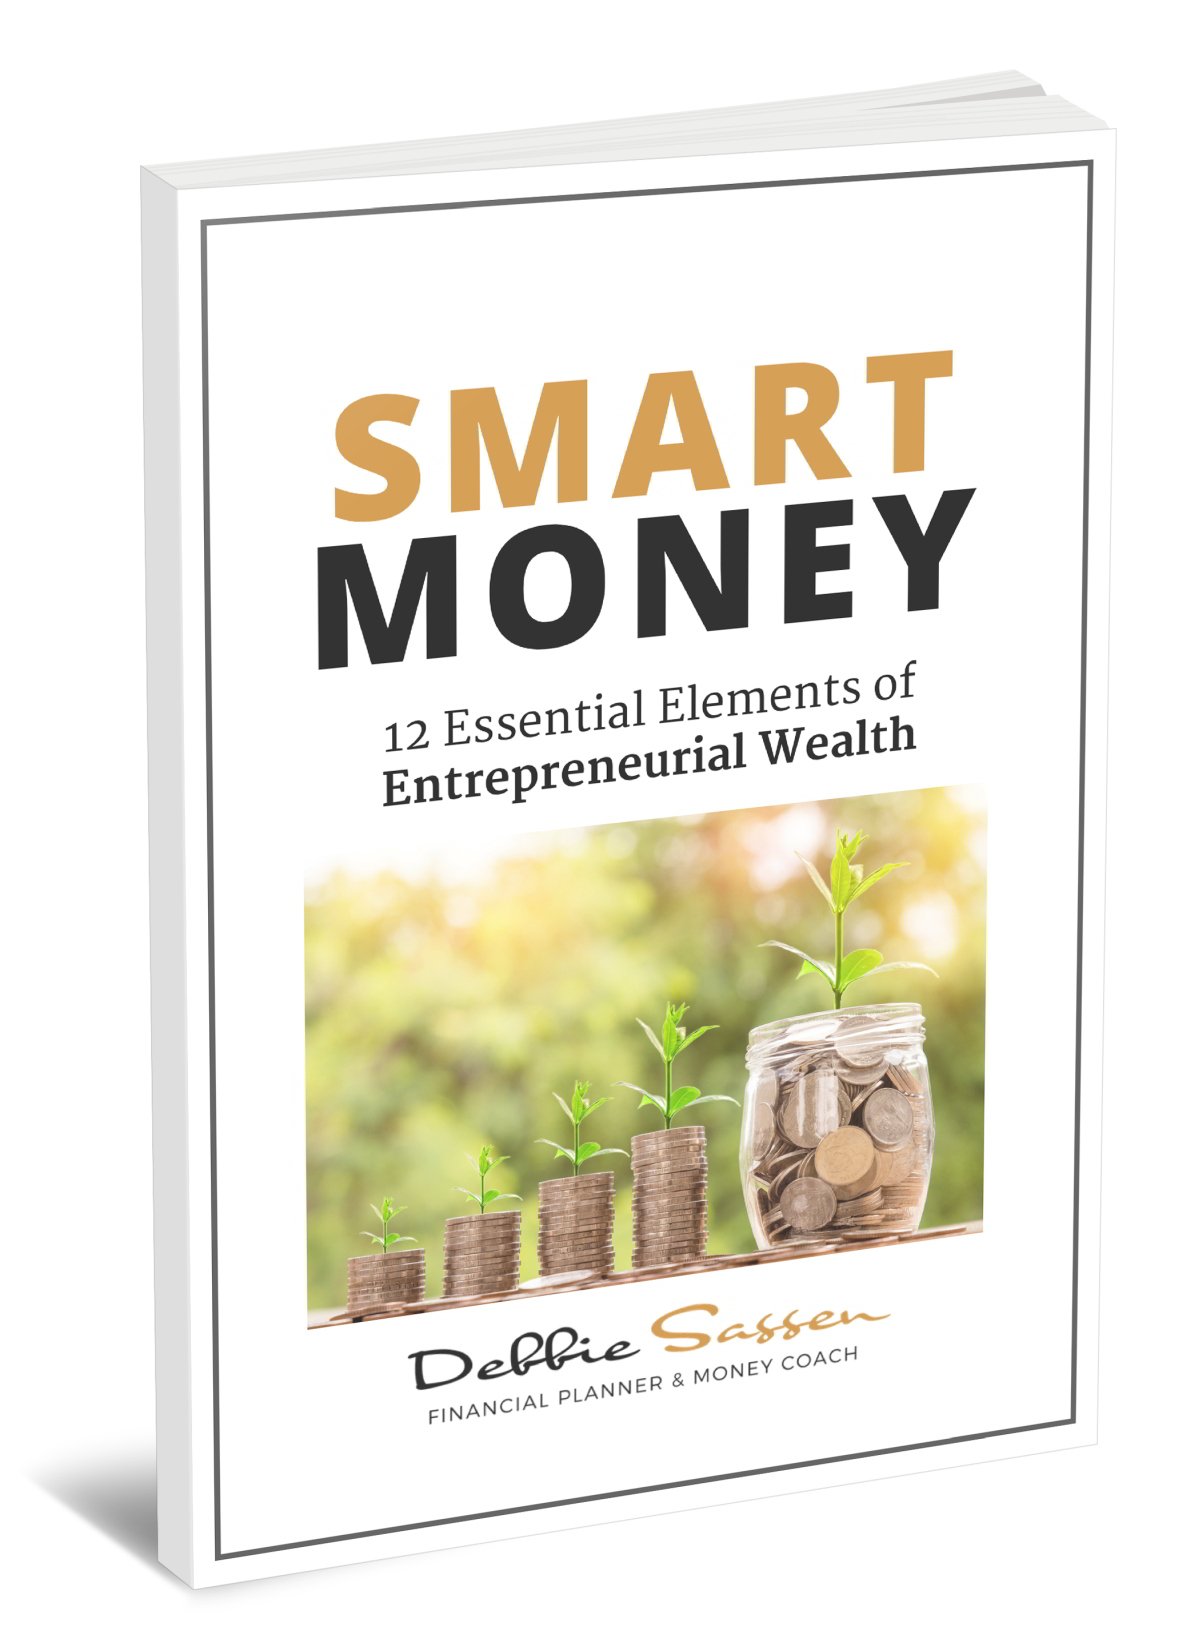 Smart Money: 12 Essential Elements of Entrepreneurial Wealth eBook by Debbie Sassen